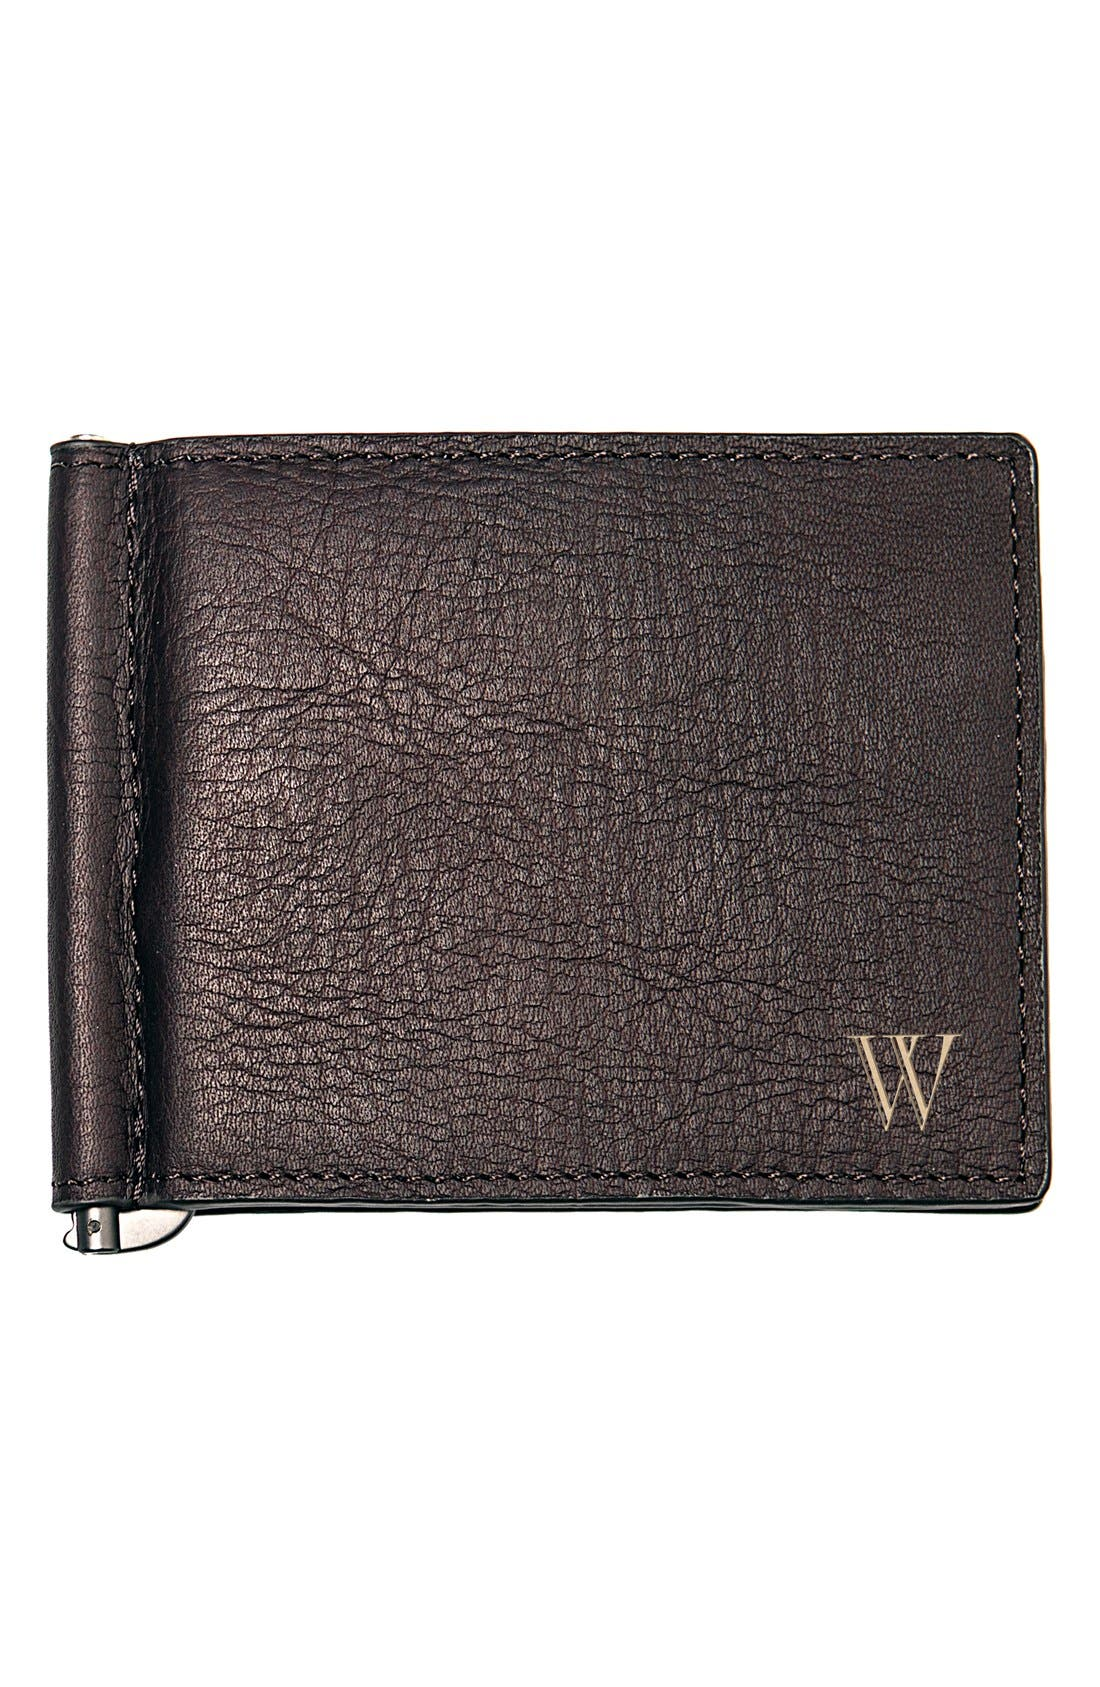 Alternate Image 1 Selected - Cathy's Concepts Monogram Leather Wallet & Money Clip